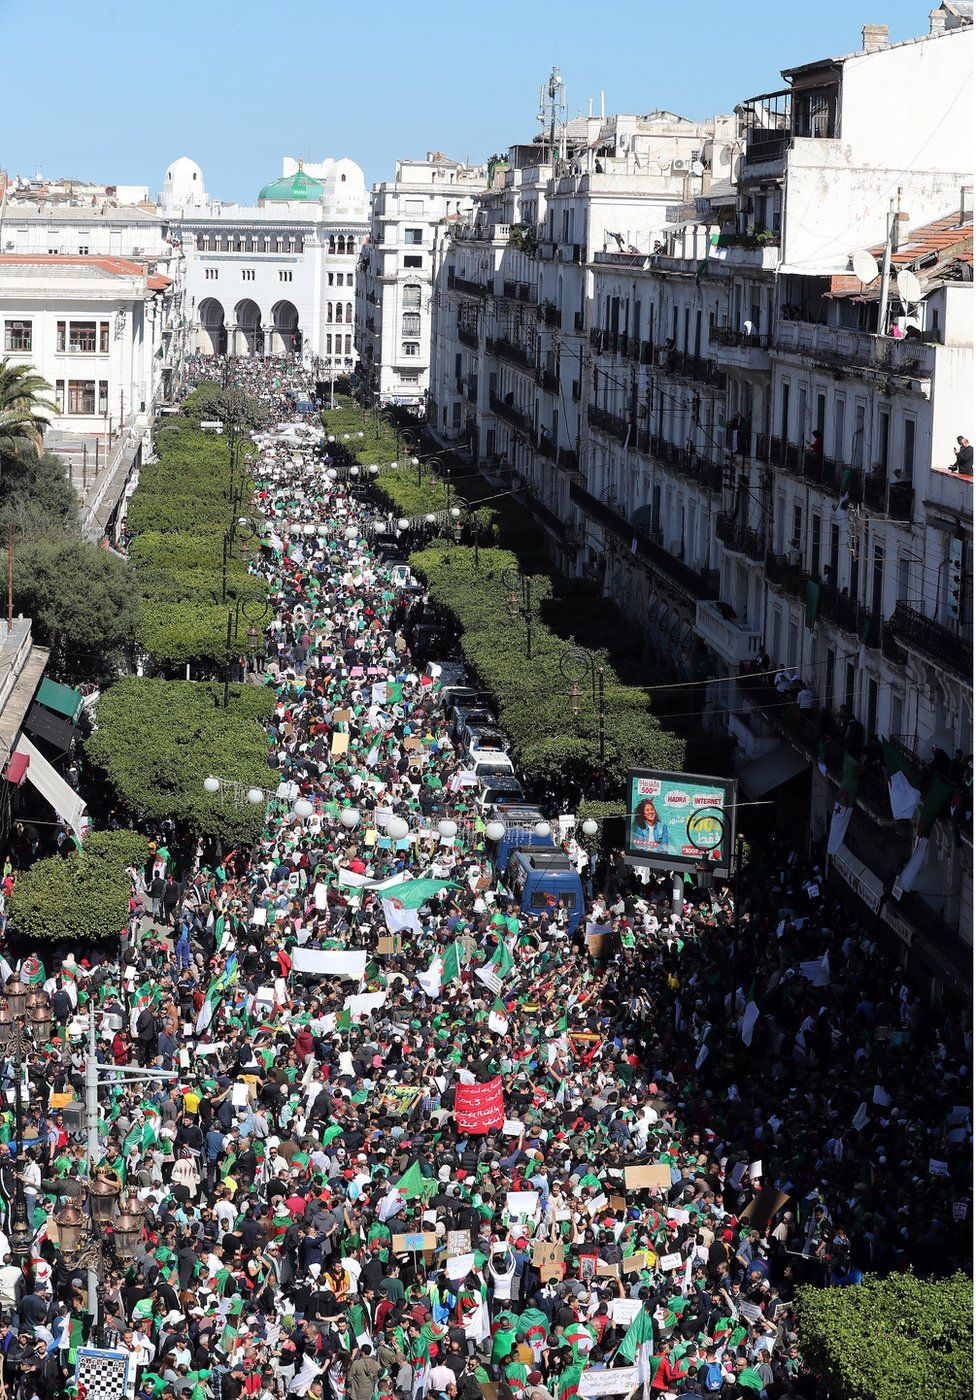 Algerians protesting against President Abdelaziz Bouteflika pictured in the capital, Algiers, on 15 March 2019.